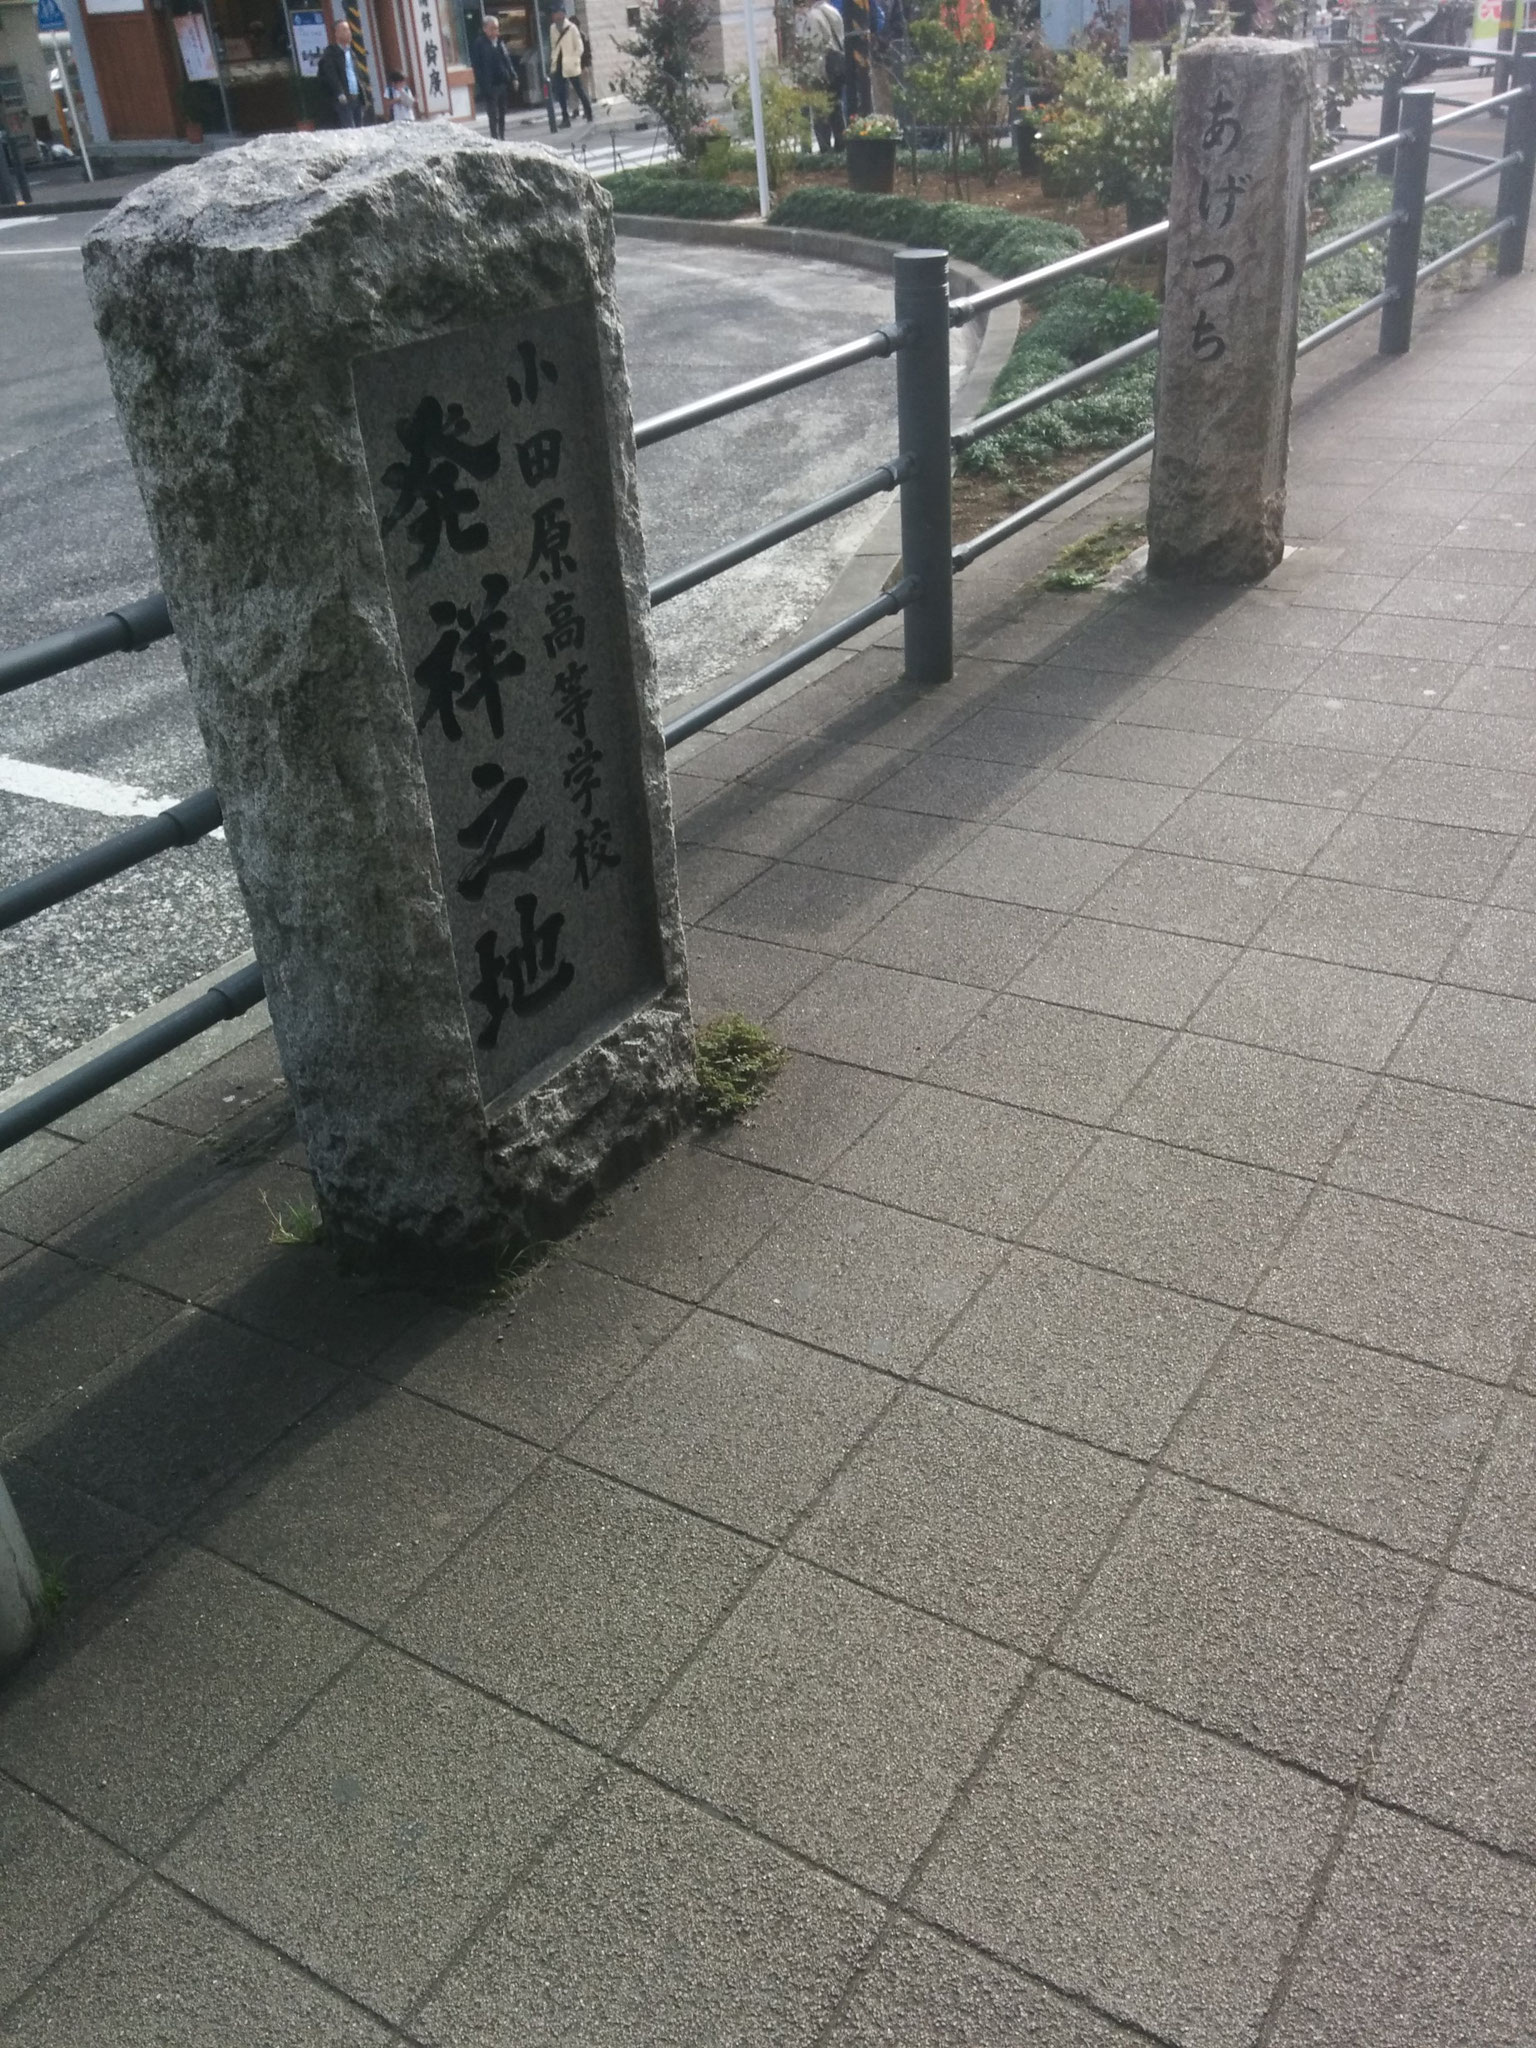 Odawara (stone indicates where the castle area ended back in the days)